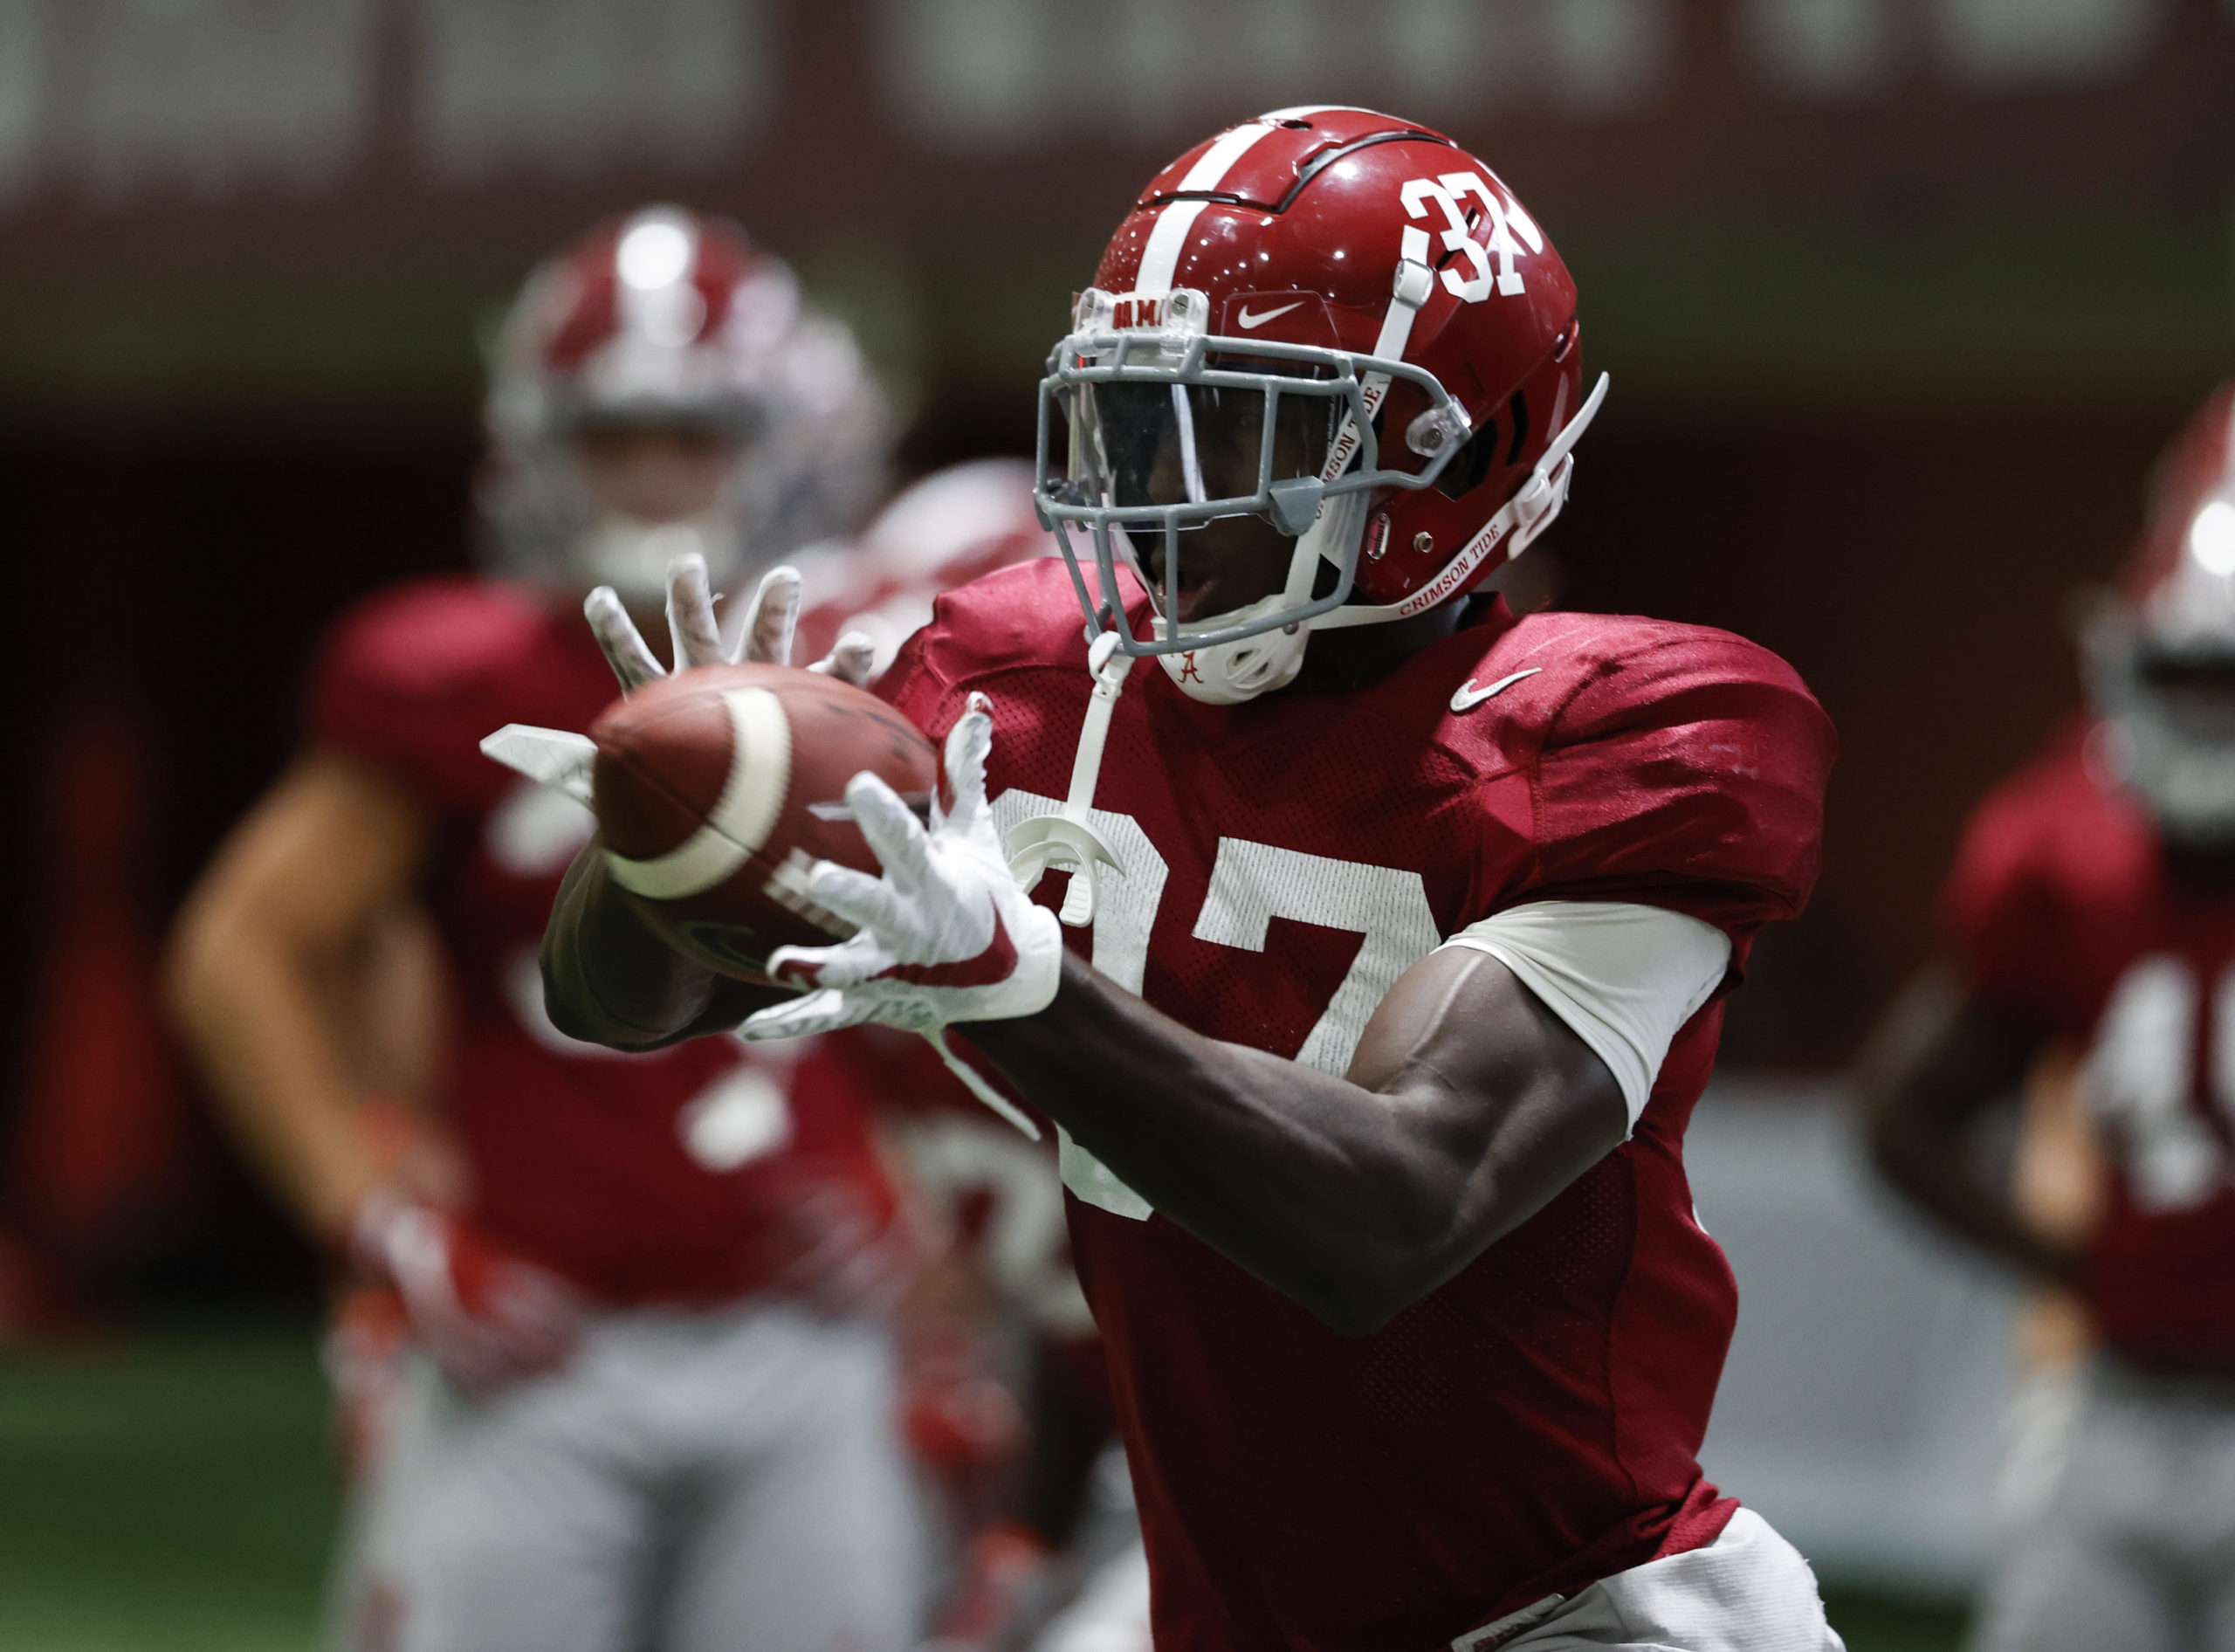 Demouy Kennedy catches football at Alabama practice